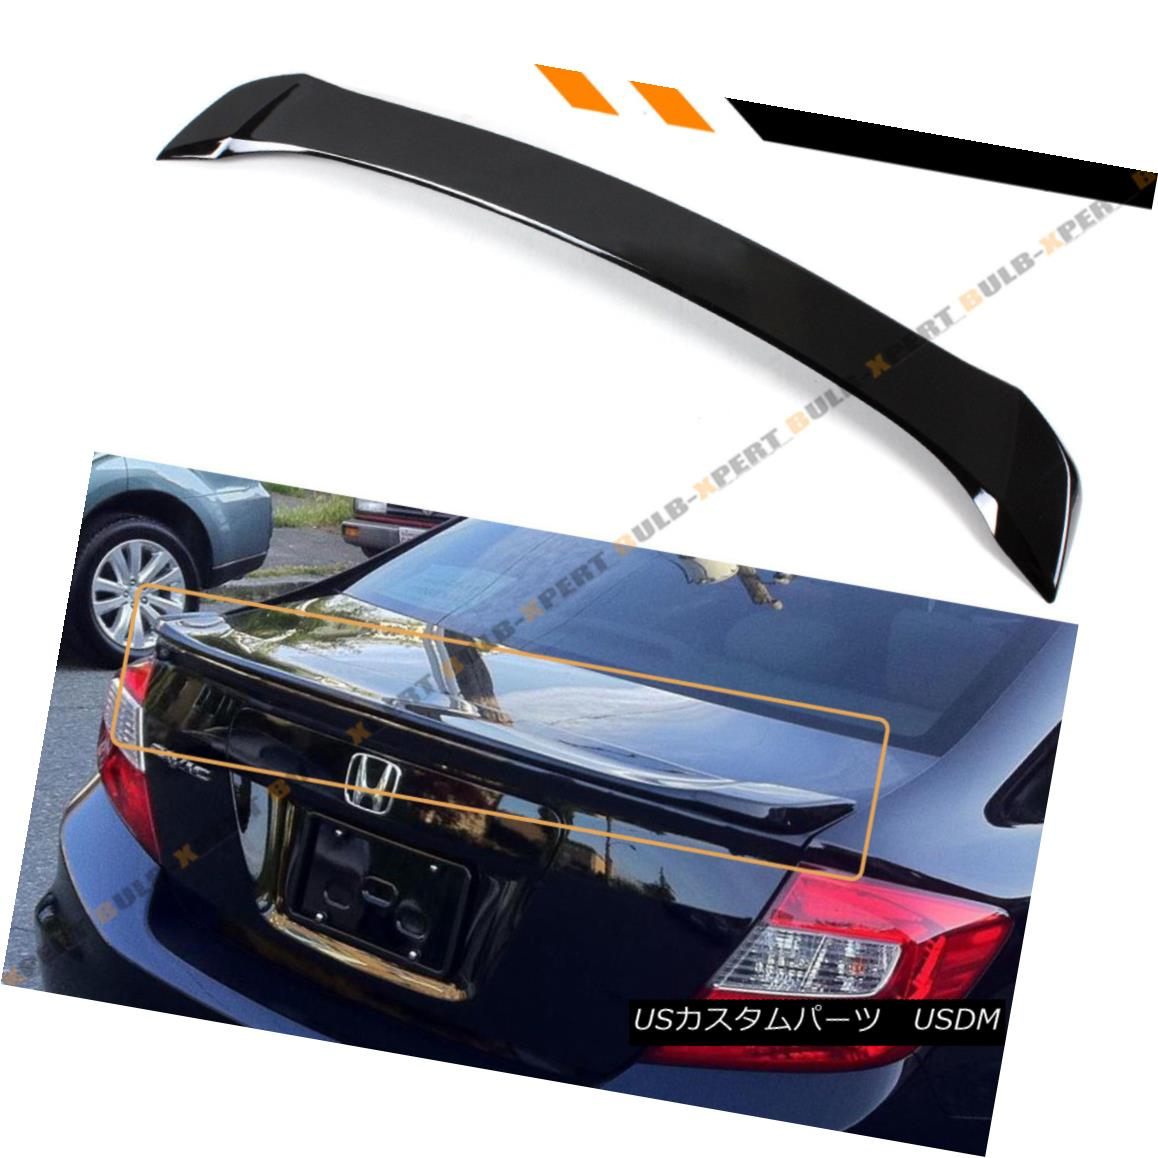 エアロパーツ FOR 2012-15 9TH GEN HONDA CIVIC SEDAN FB GLOSS PRE-PAINTED BLK TRUNK SPOILER LID 2012年9月15日第9世代ホンダセダンFBグラスプレイングBLK TRUNK SPOILER LID